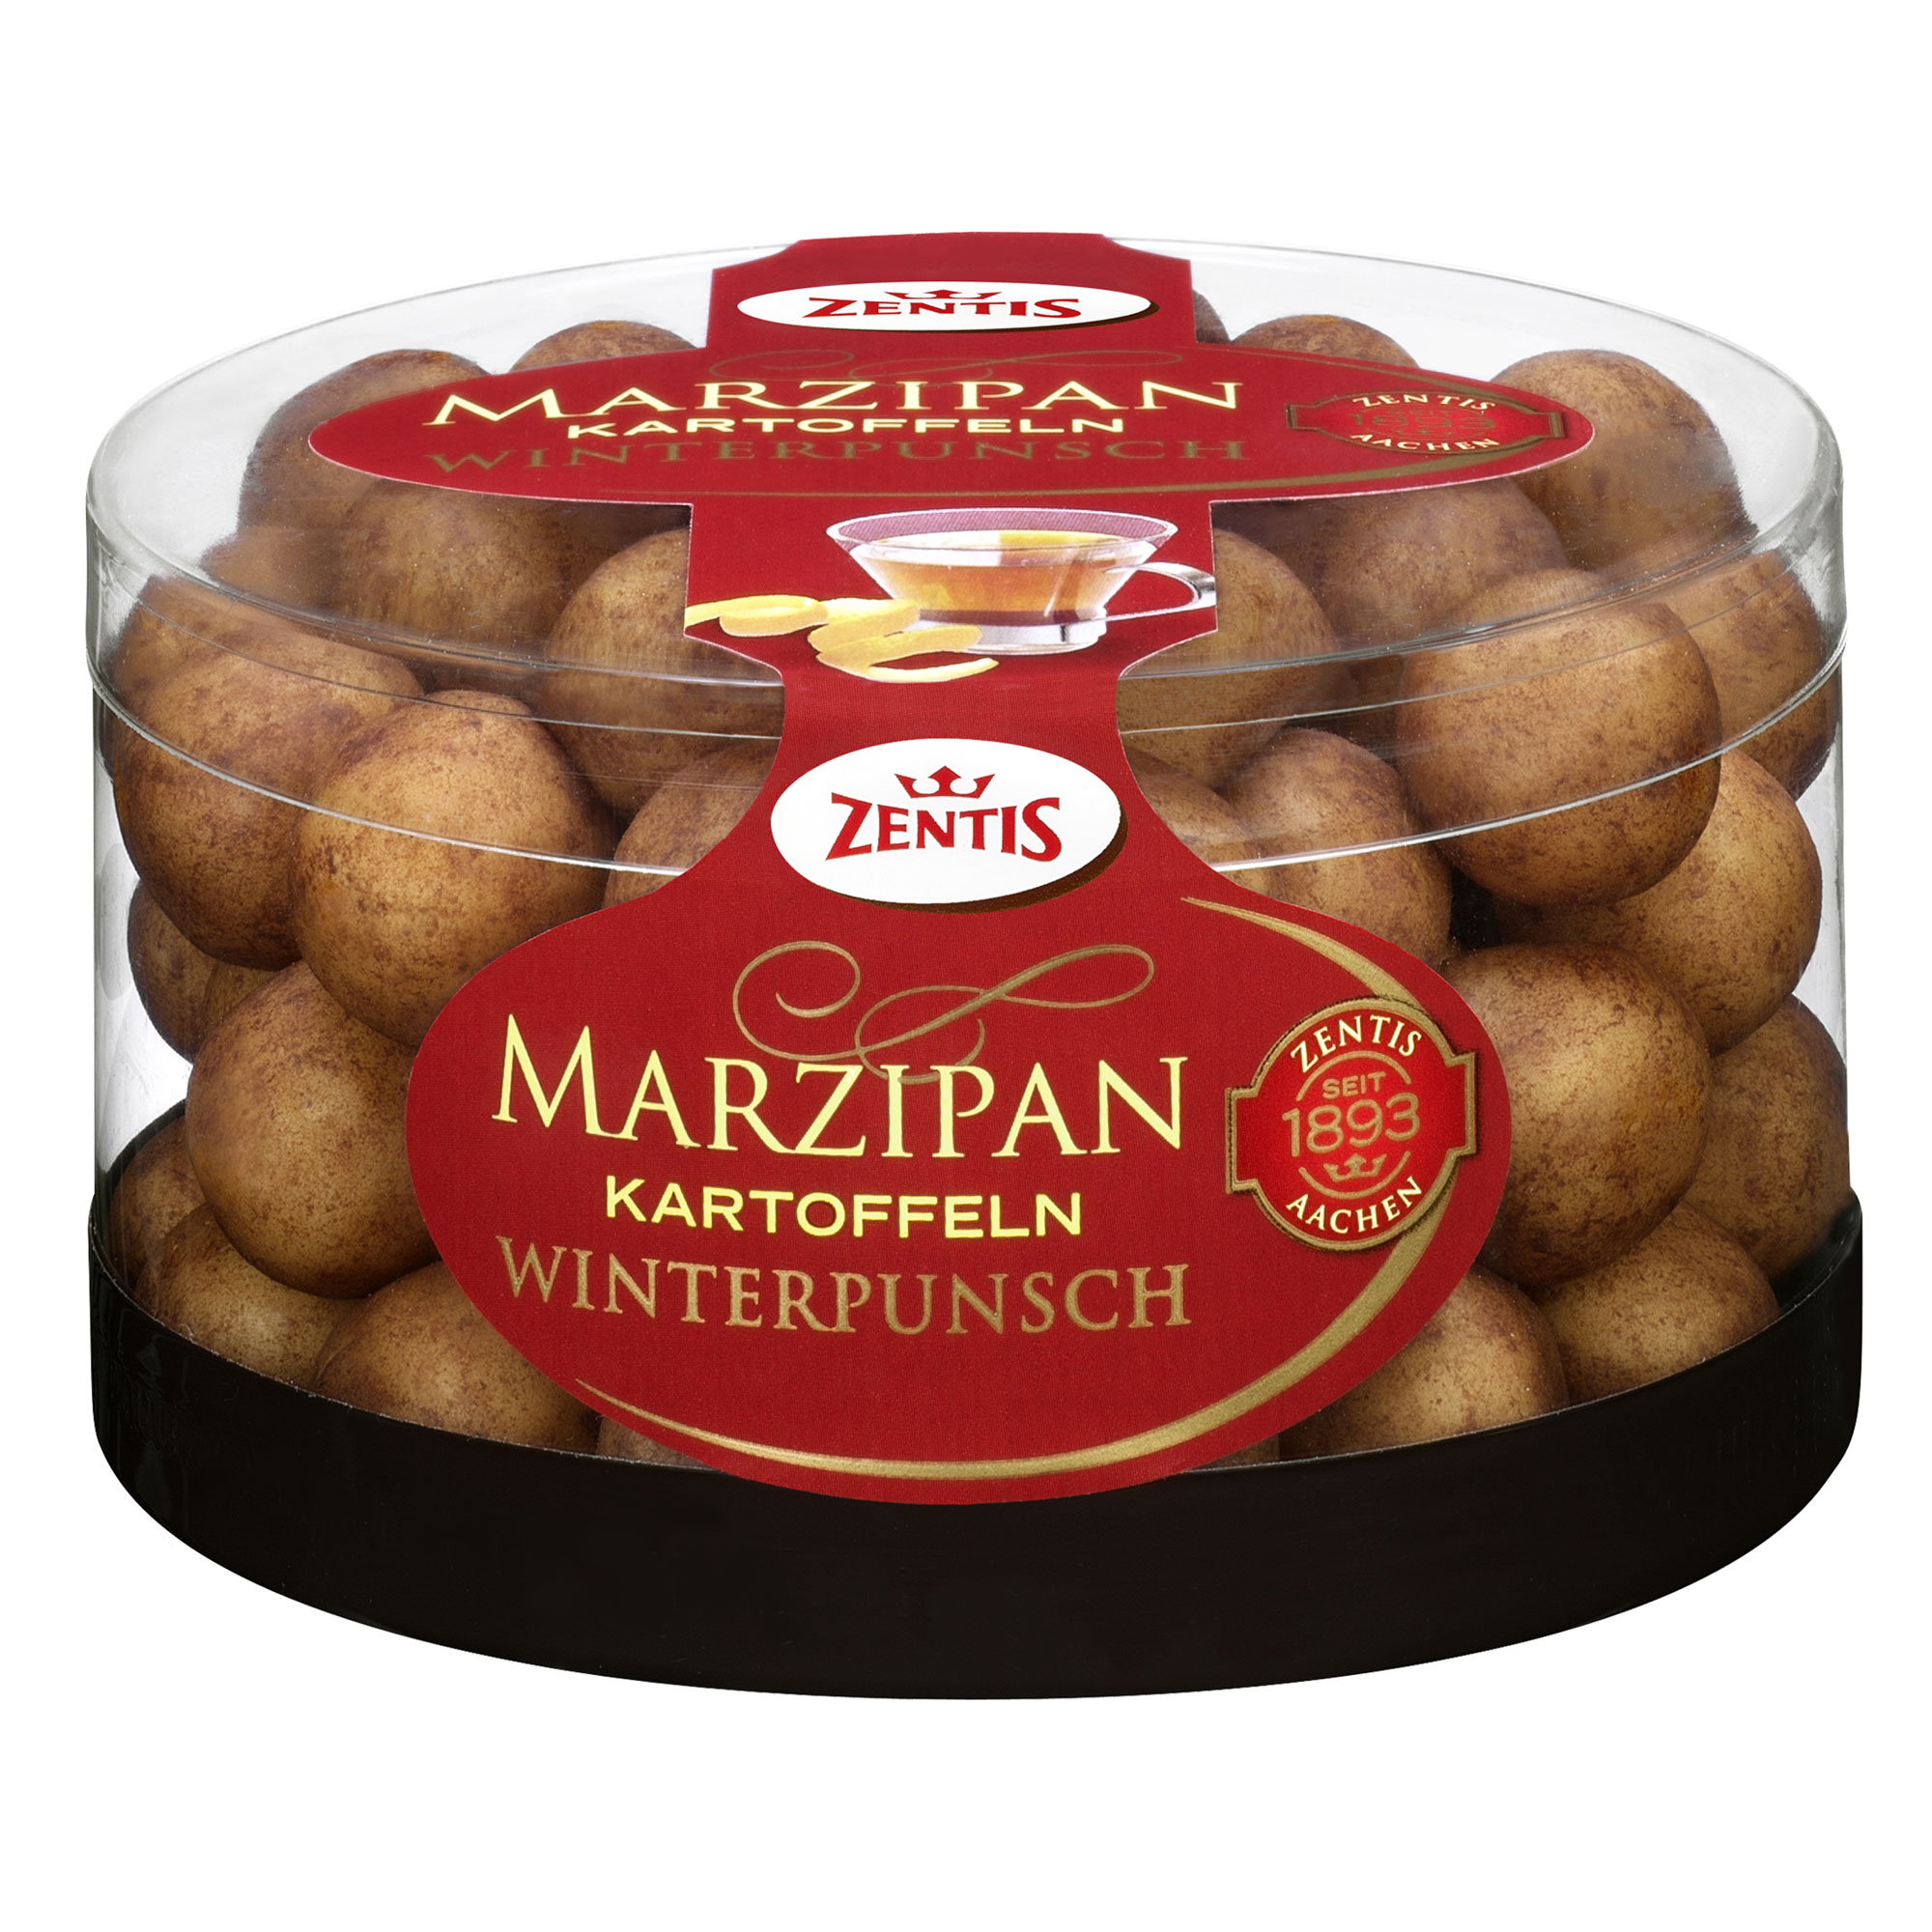 zentis marzipan kartoffeln winterpunsch 500g online. Black Bedroom Furniture Sets. Home Design Ideas